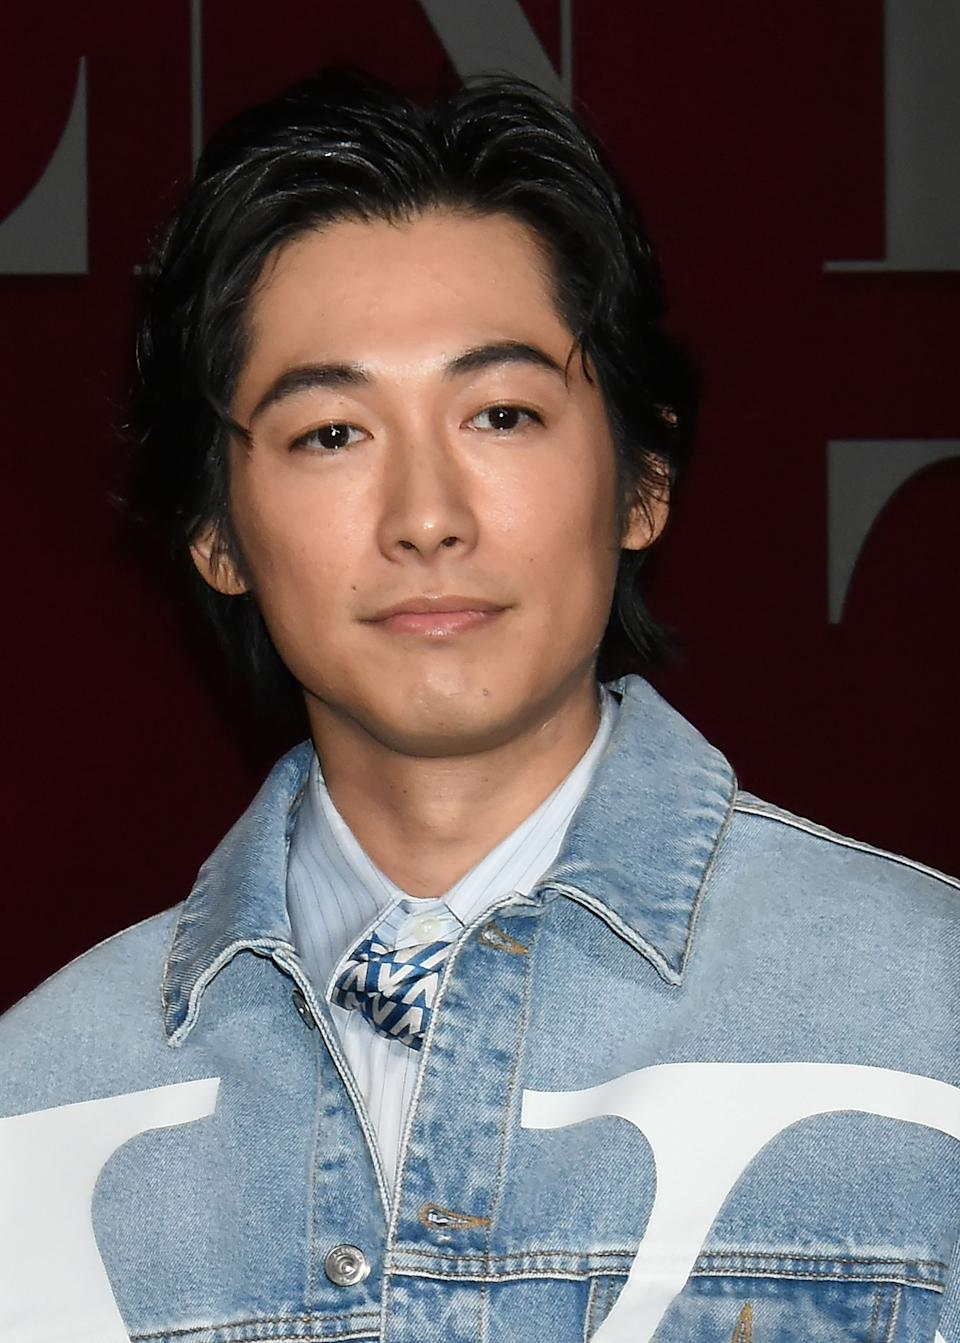 TOKYO, JAPAN - NOVEMBER 27:  Actor Dean Fujioka attends the photocall for Valentino TKY 2019 Pre-Fall Collection at Terada Warehouse on November 27, 2018 in Tokyo, Japan.  (Photo by Jun Sato/WireImage)